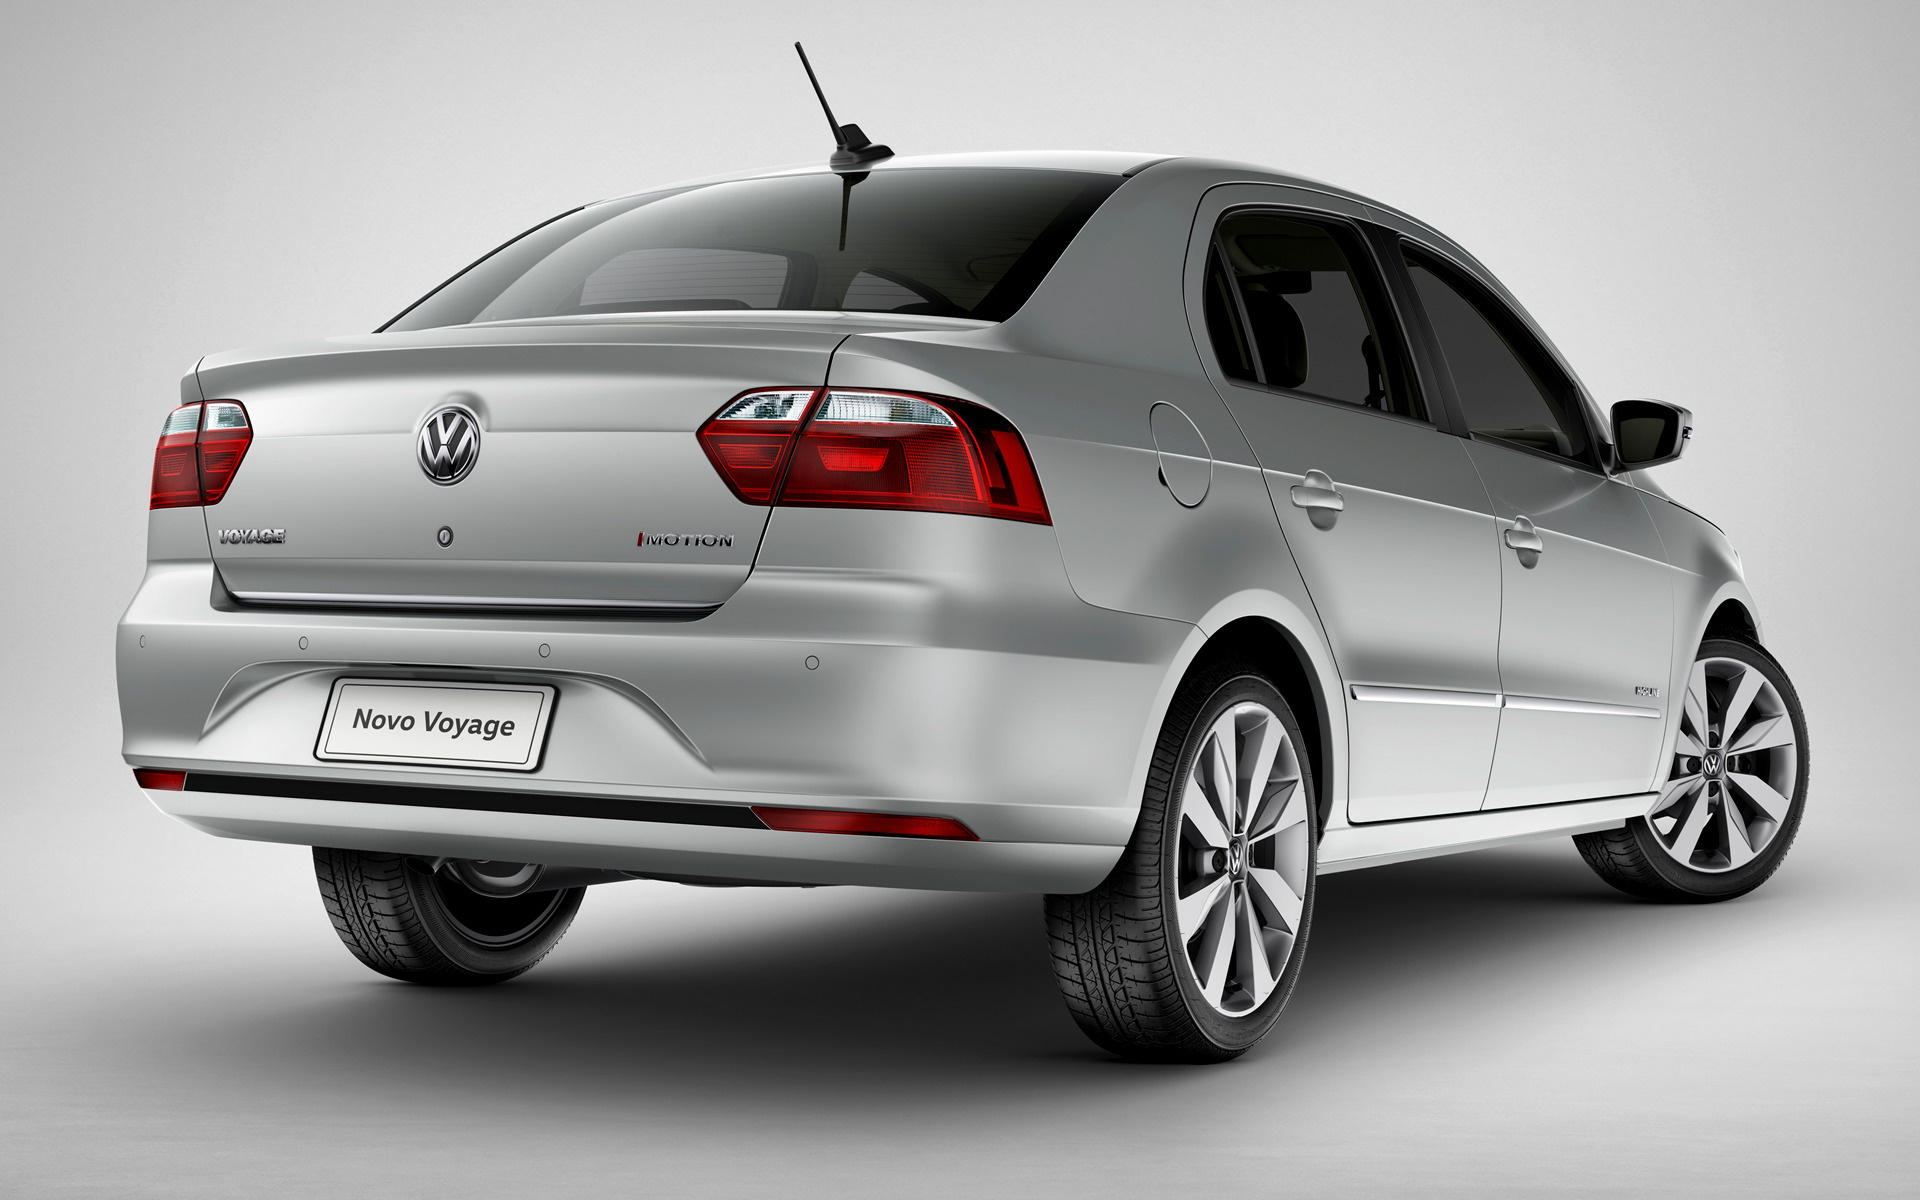 2016 Volkswagen Voyage - Wallpapers and HD Images | Car Pixel